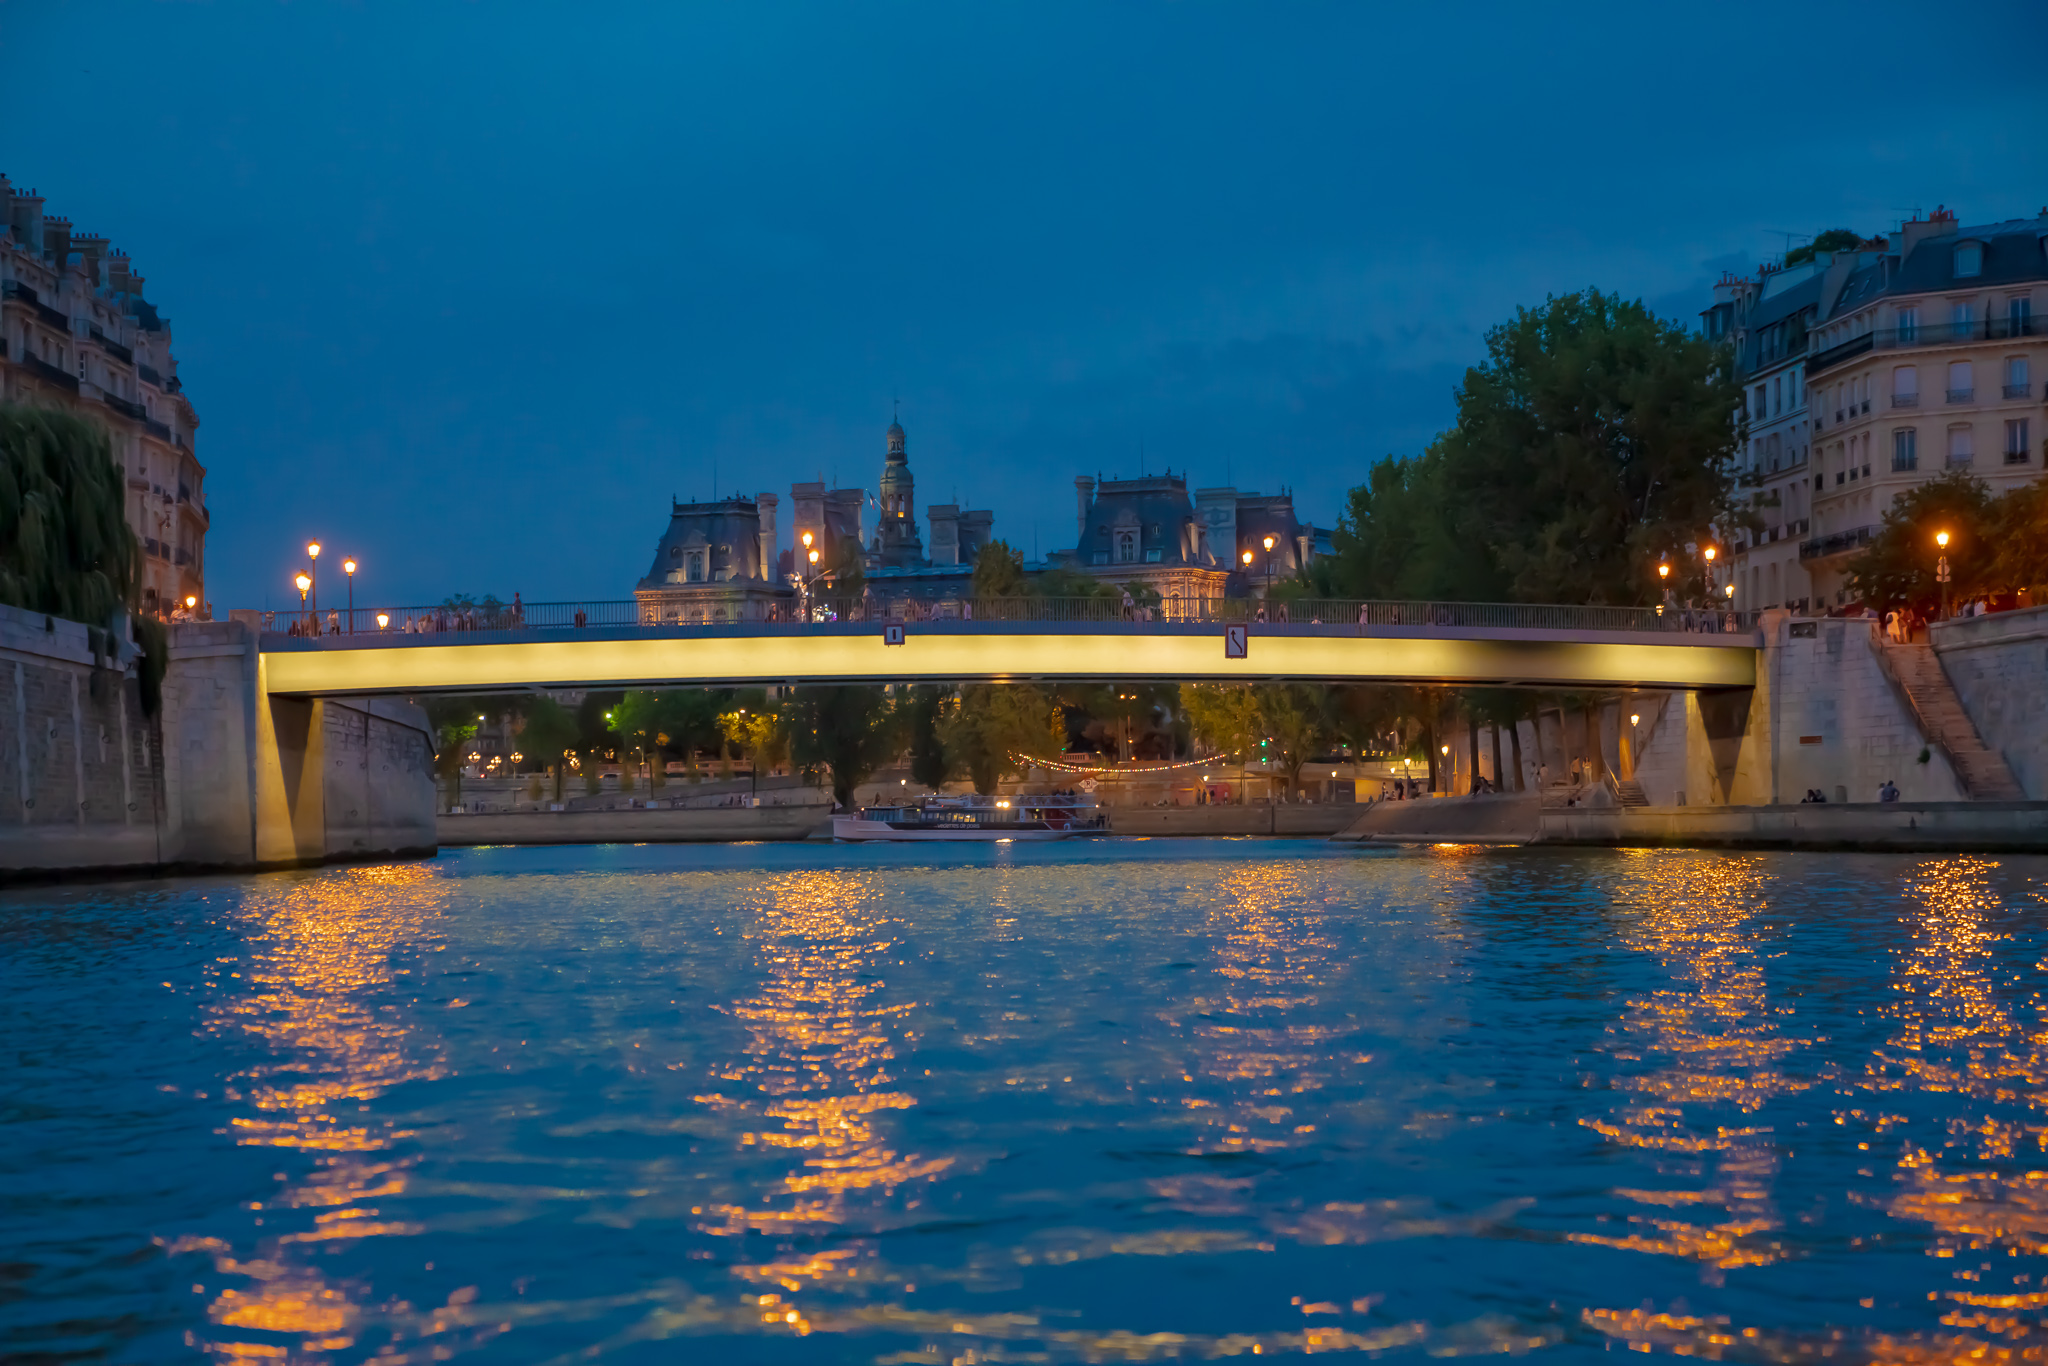 A bridge over the Seine river at twilight in Paris, France